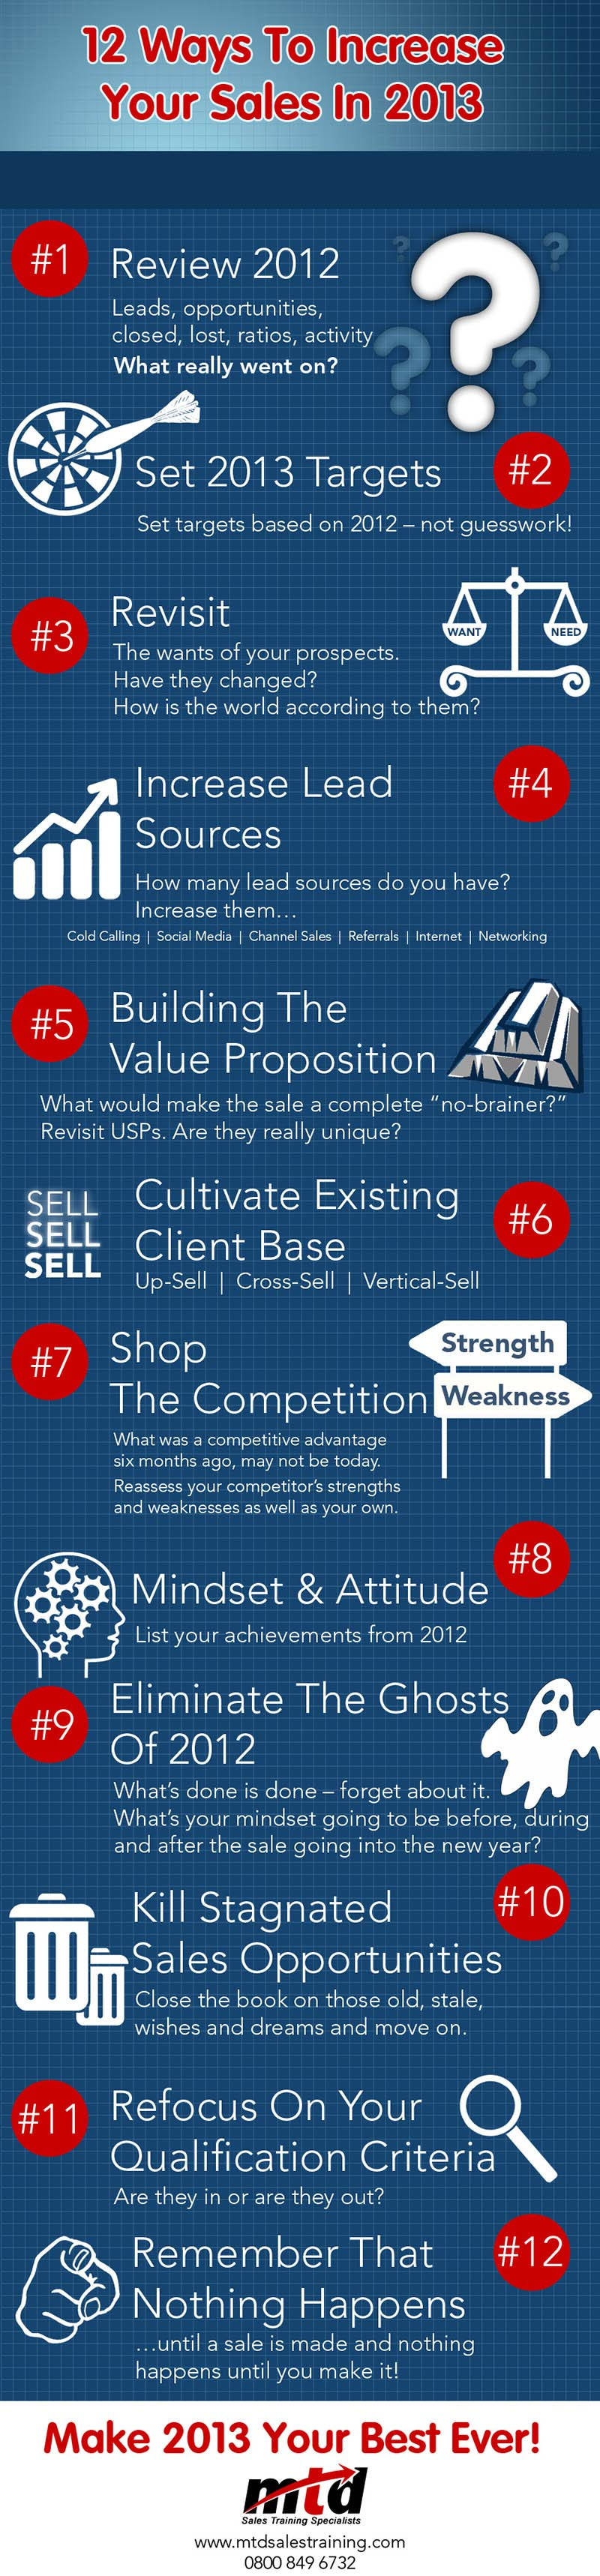 12 Ways To Increase Your Sales